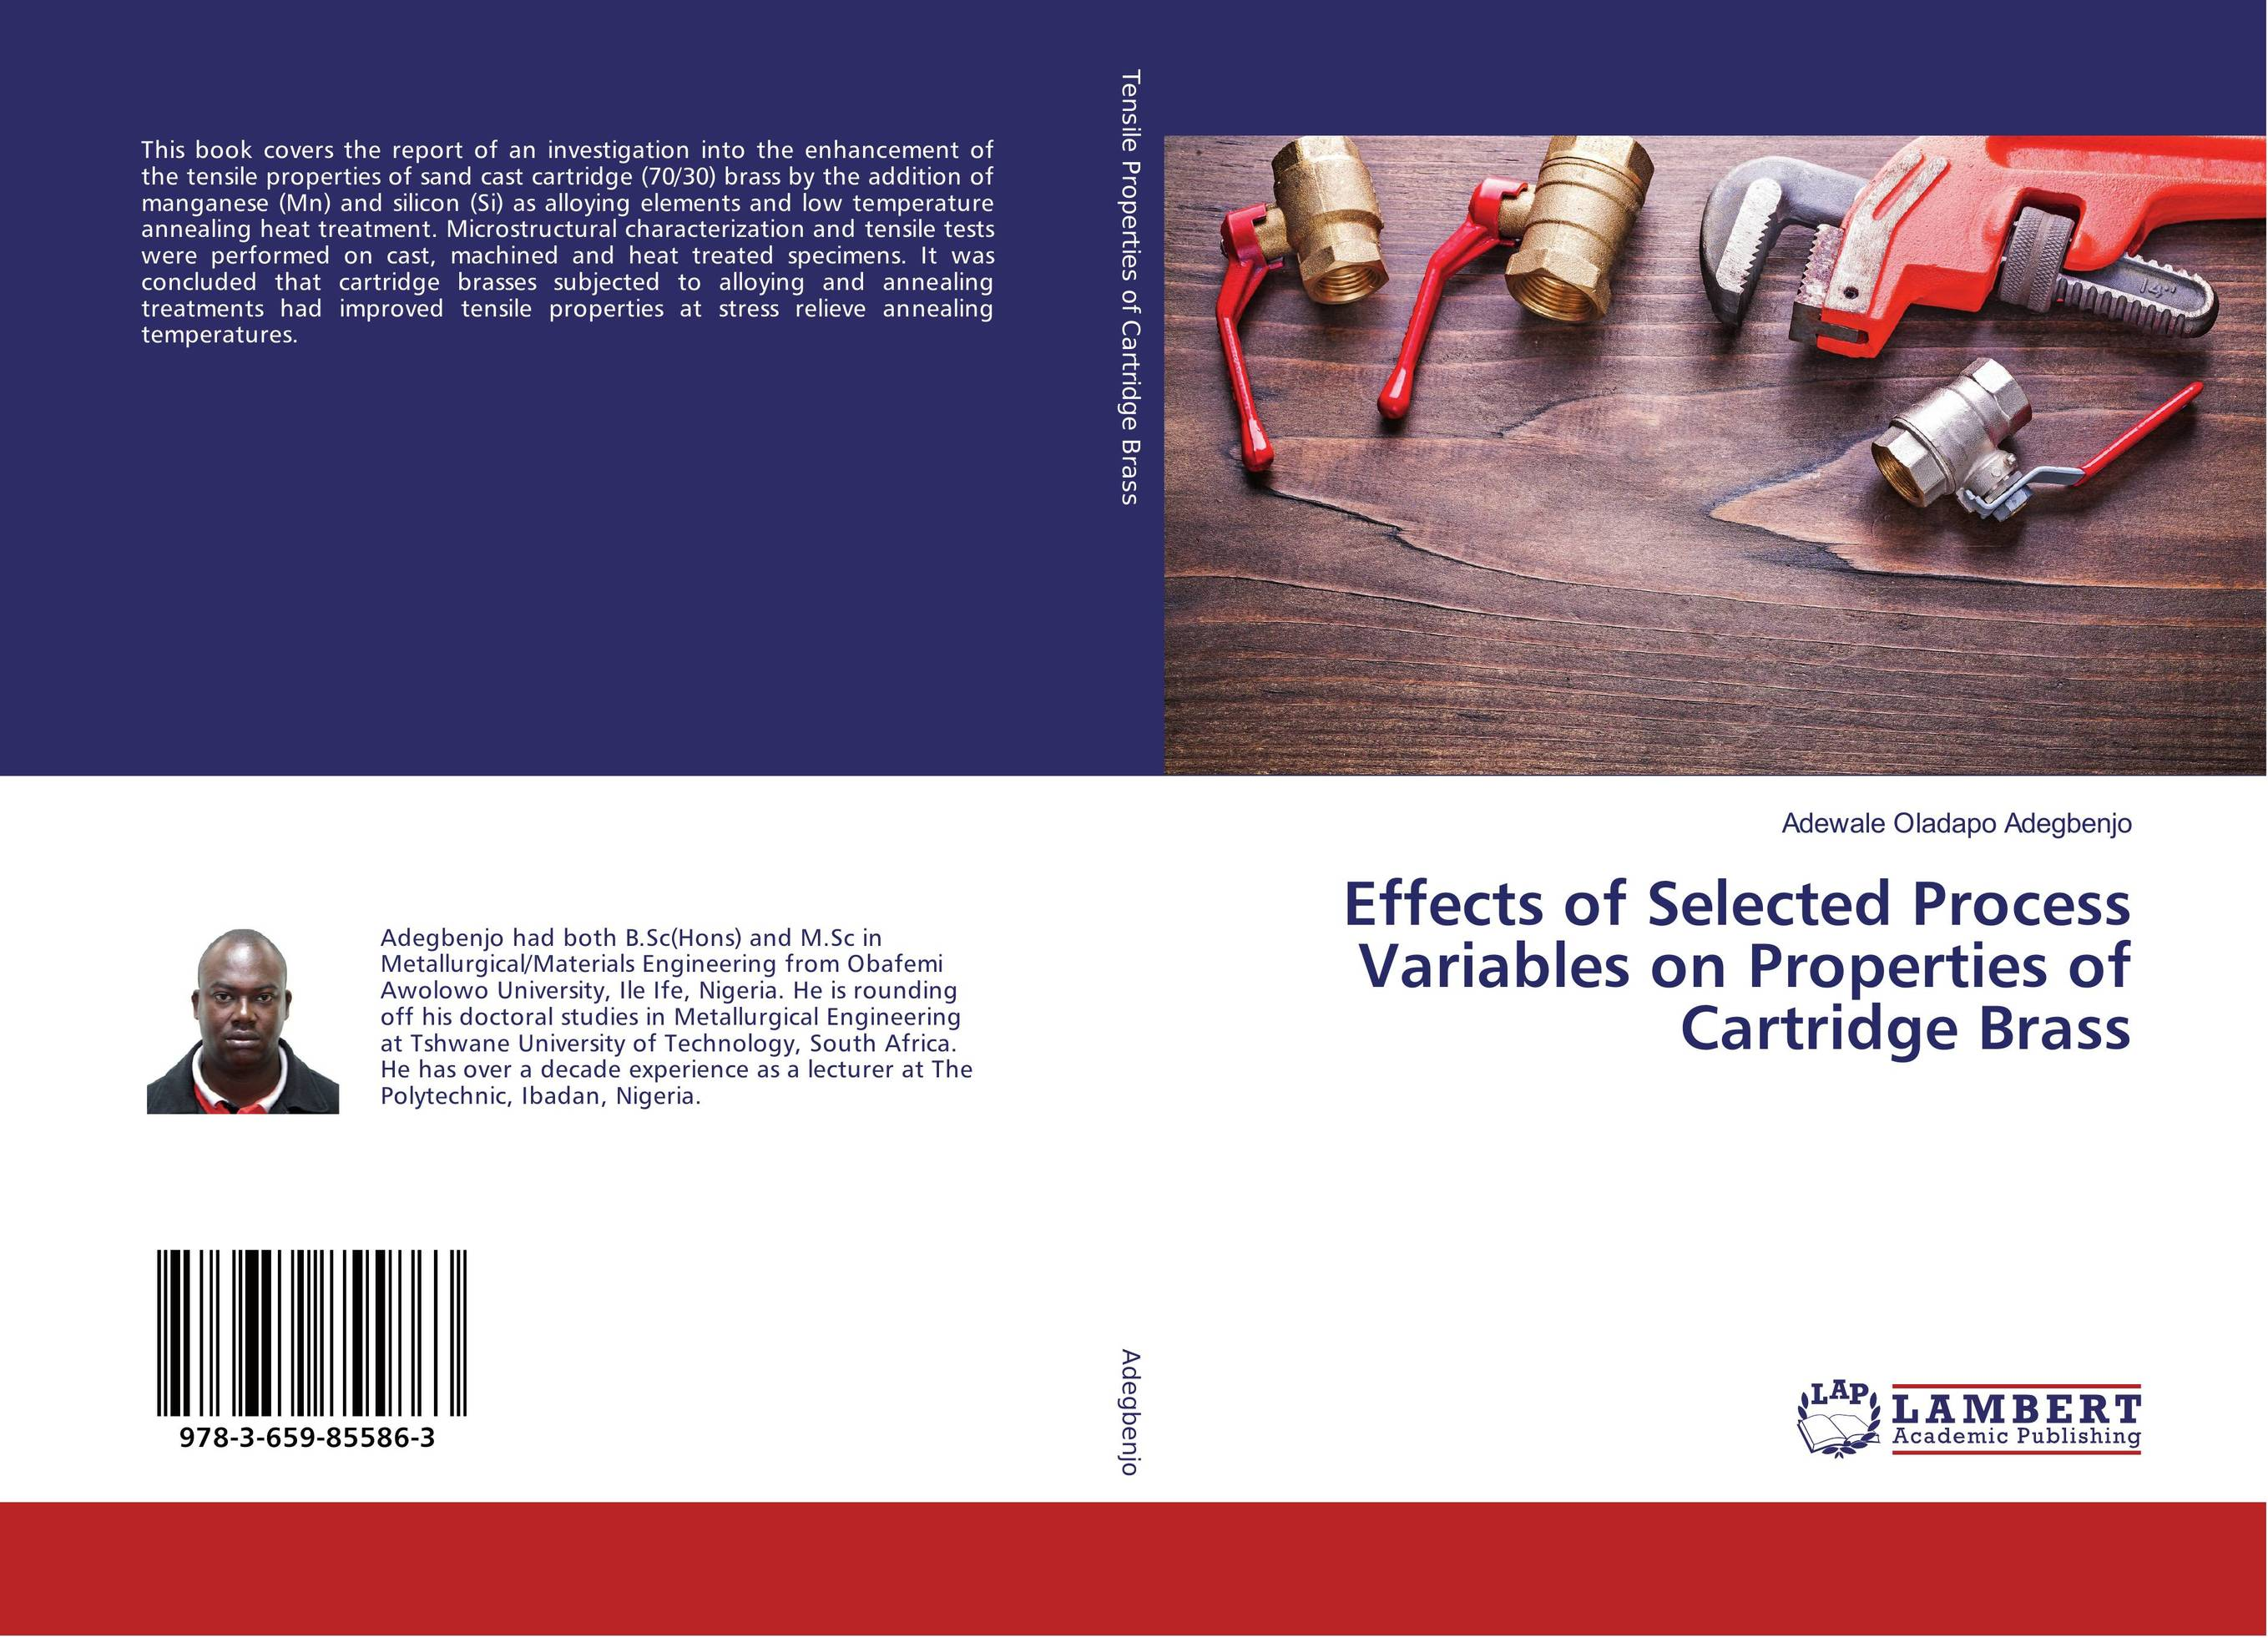 Effects of Selected Process Variables on Properties of Cartridge Brass